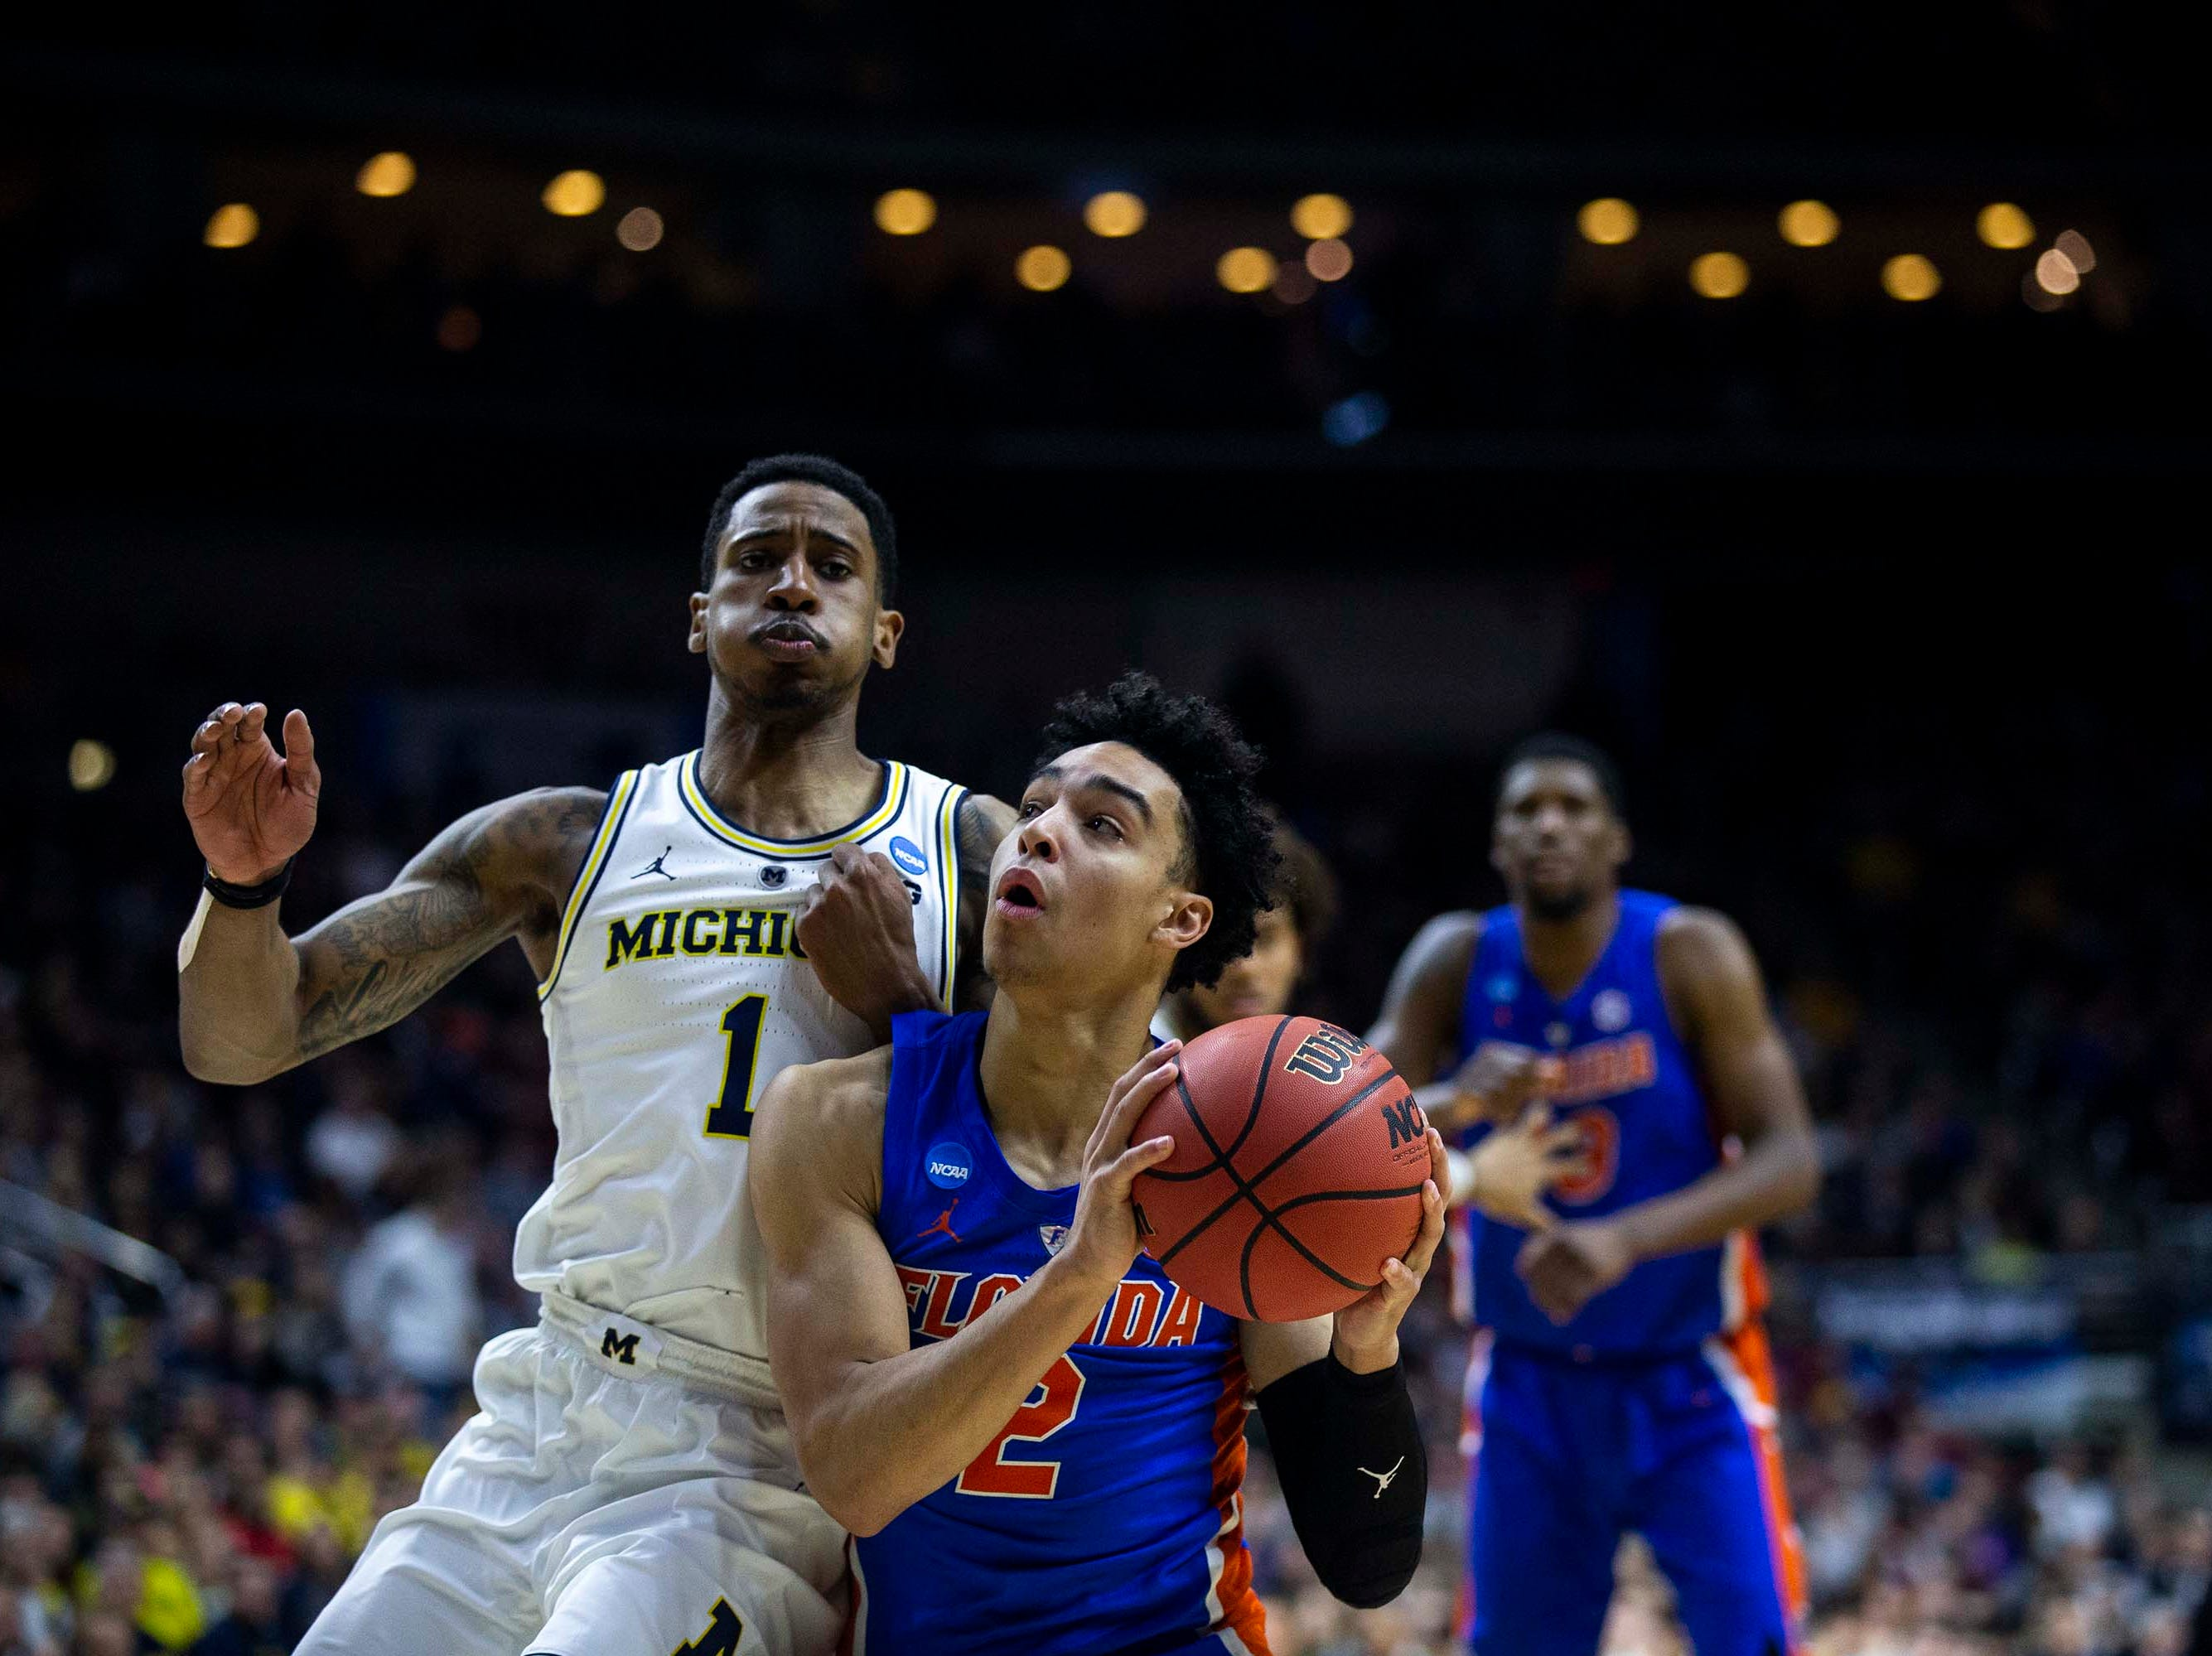 Florida's Andrew Nembhard drives to the hoop during the NCAA Tournament second-round match-up between Michigan and Florida on Saturday, March 23, 2019, in Wells Fargo Arena in Des Moines, Iowa.